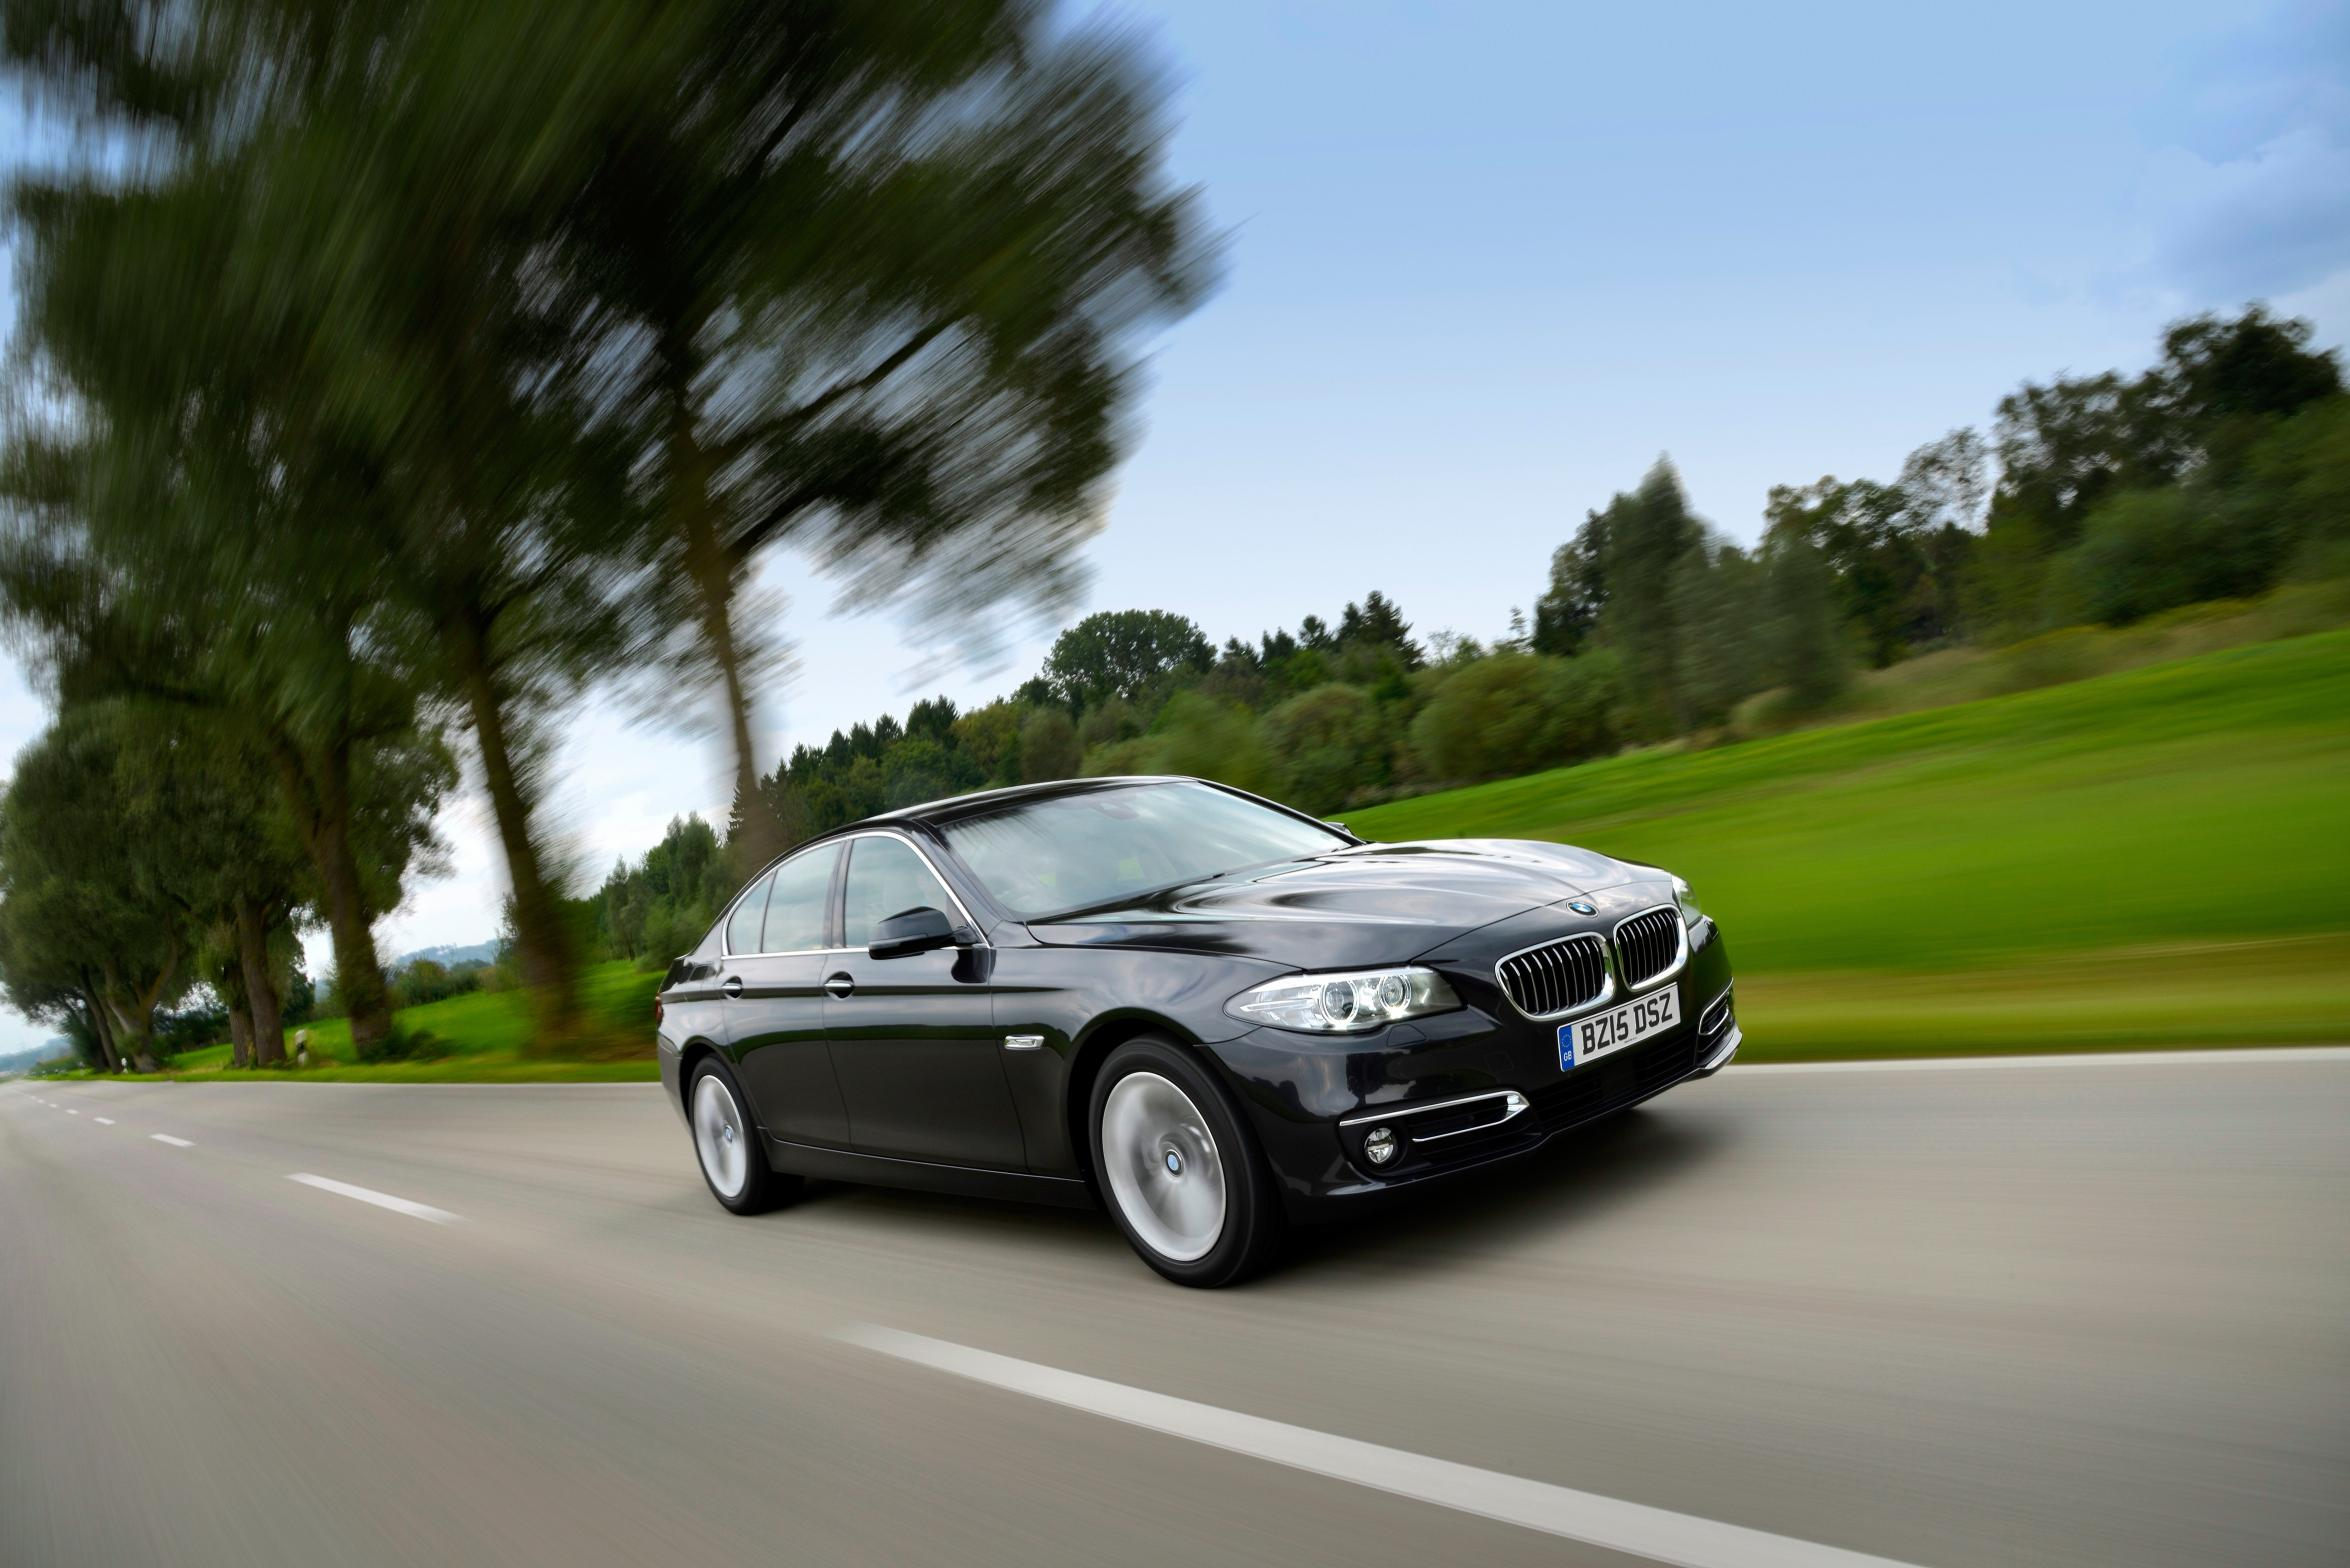 Bmw 5 Series Review Prices Specs And 0 60 Time Evo